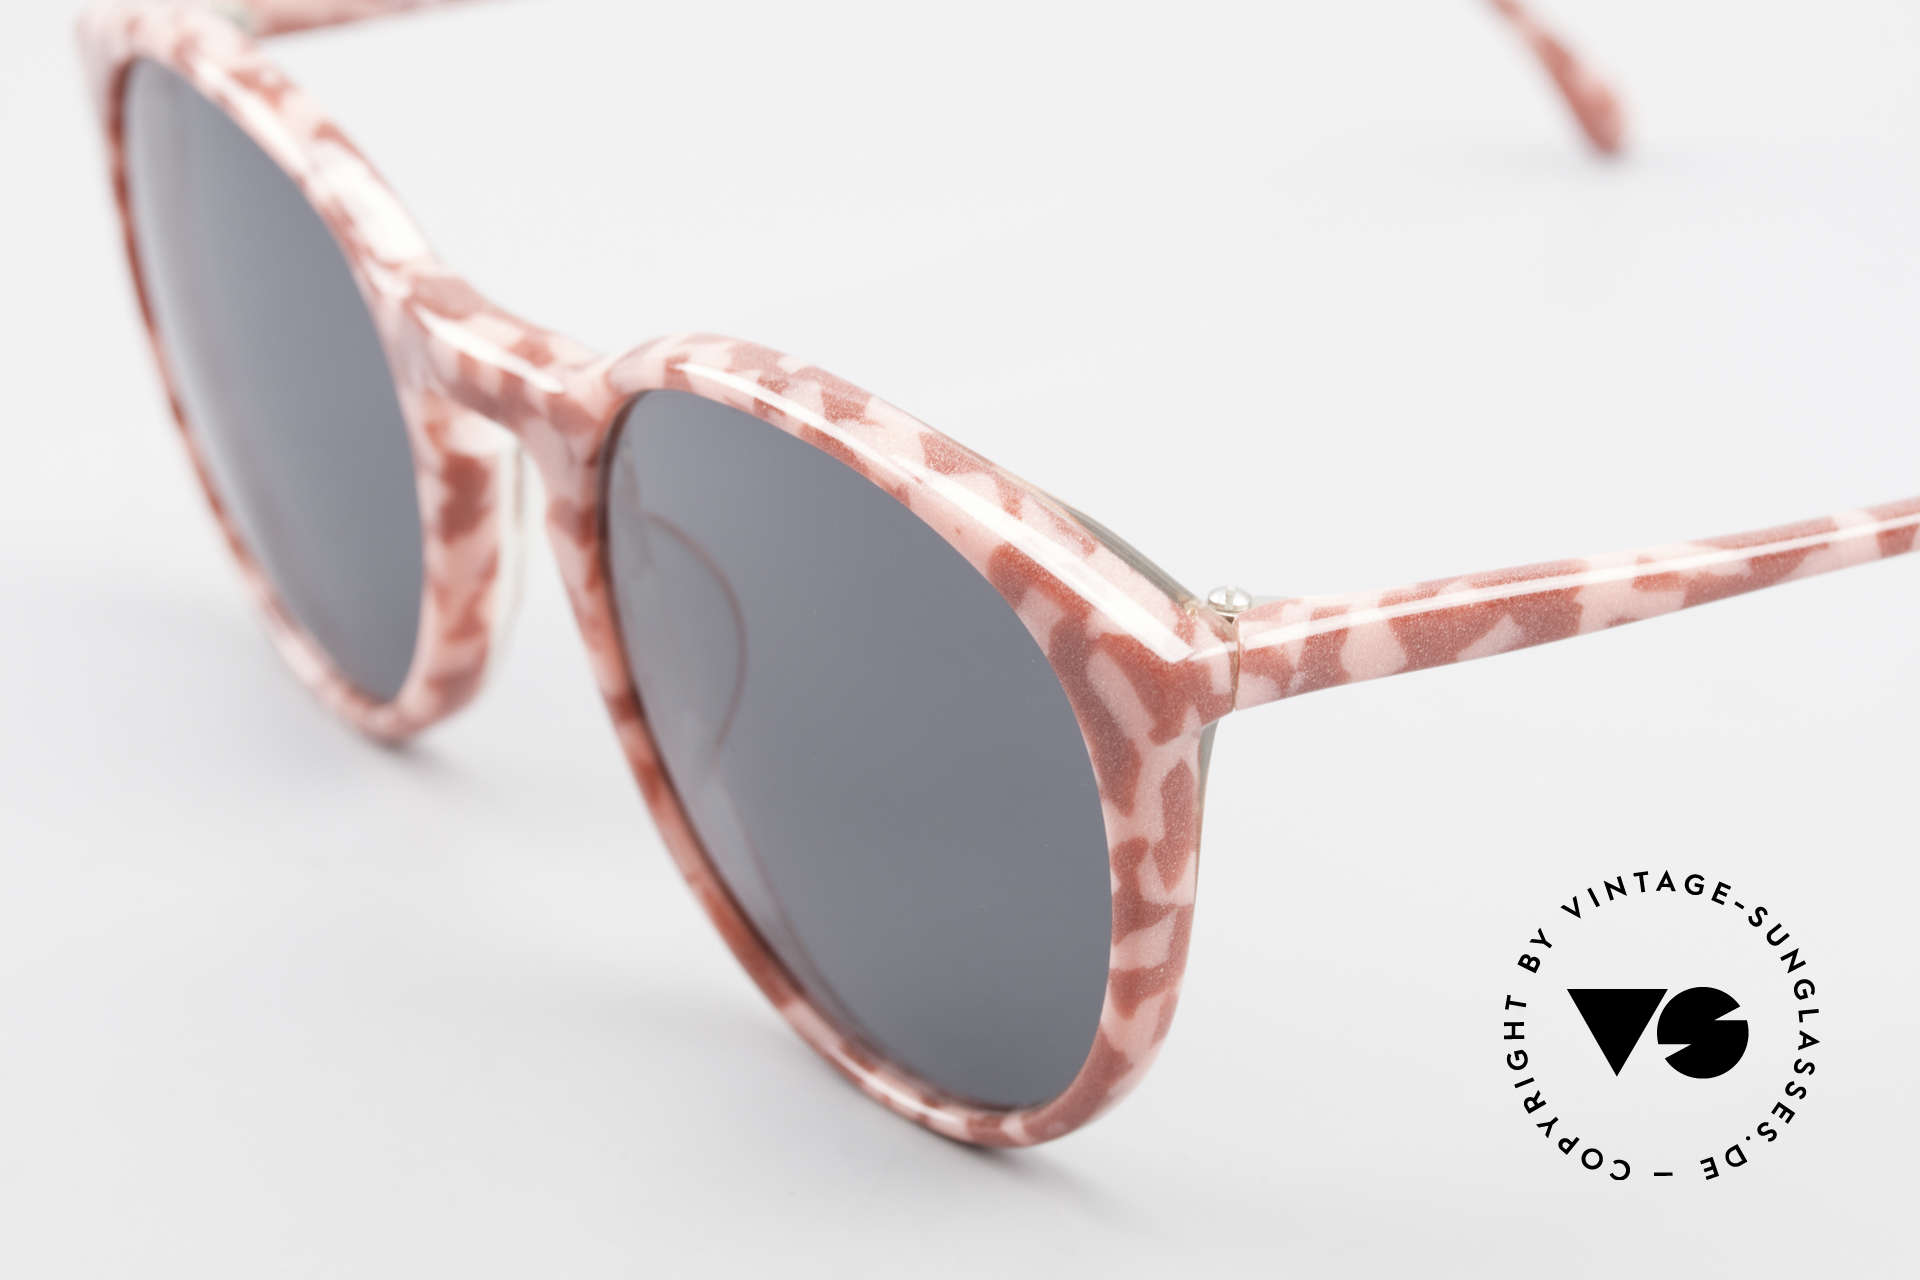 Alain Mikli 901 / 172 Panto Frame Red Pink Marbled, handmade quality and 123mm width = SMALL size, Made for Women